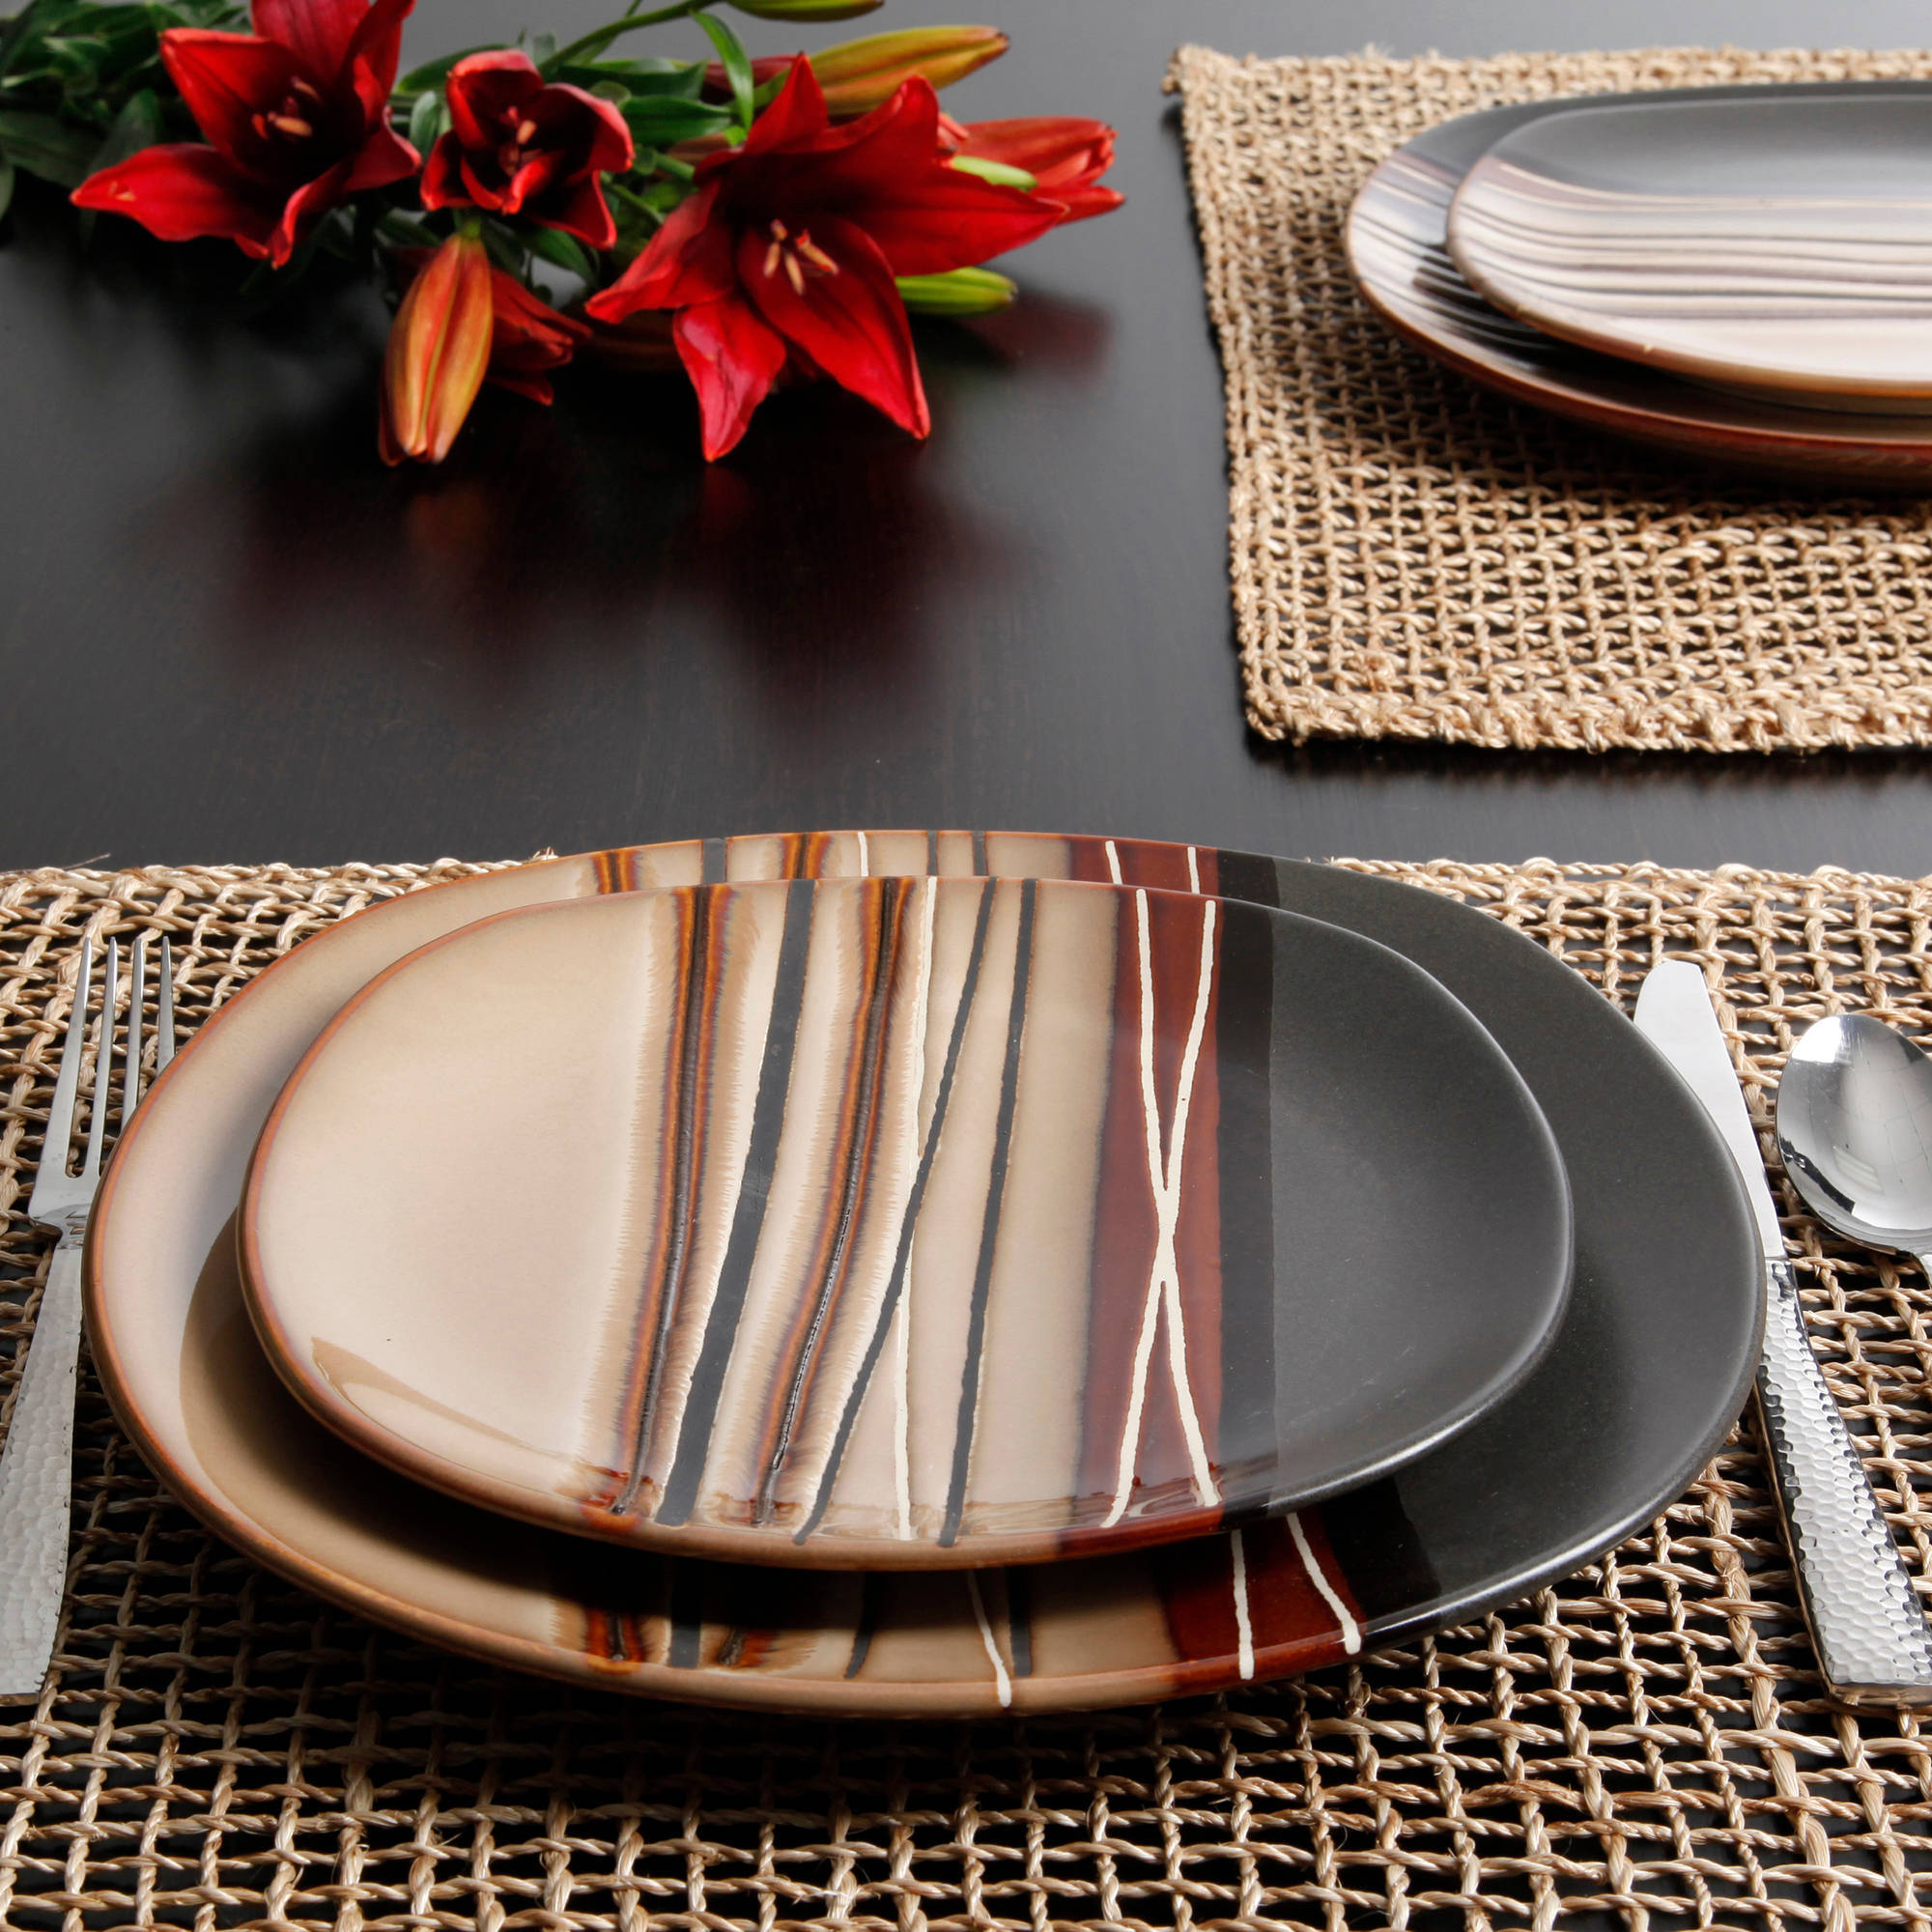 & Better Homes and Gardens Bazaar 16-Piece Dinnerware Set - Walmart.com